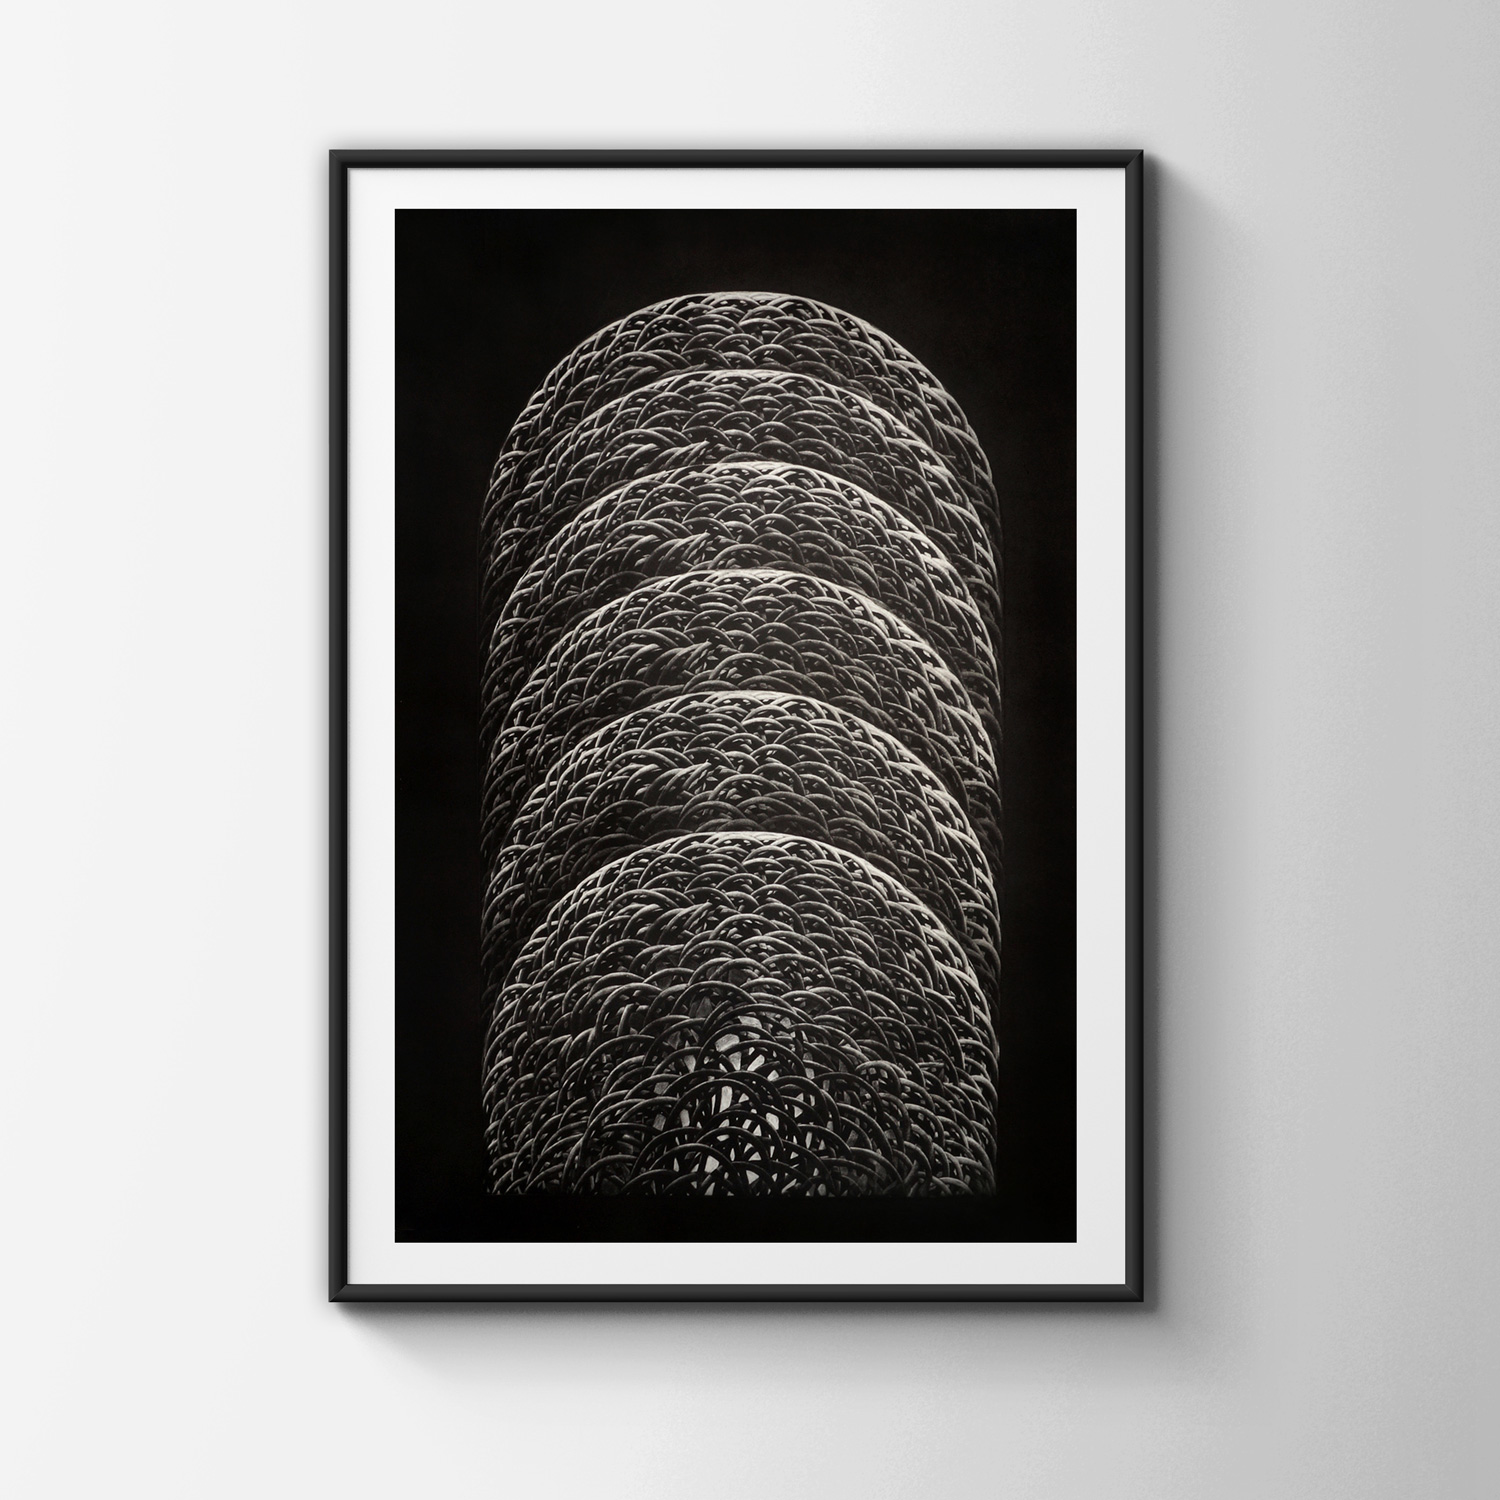 art-prints, engravings, abstract, aesthetic, monochrome, architecture, patterns, black, grey, white, ink, paper, abstract-forms, autumn, danish, decorative, design, interior, interior-design, nordic, scandinavien, Buy original high quality art. Paintings, drawings, limited edition prints & posters by talented artists.